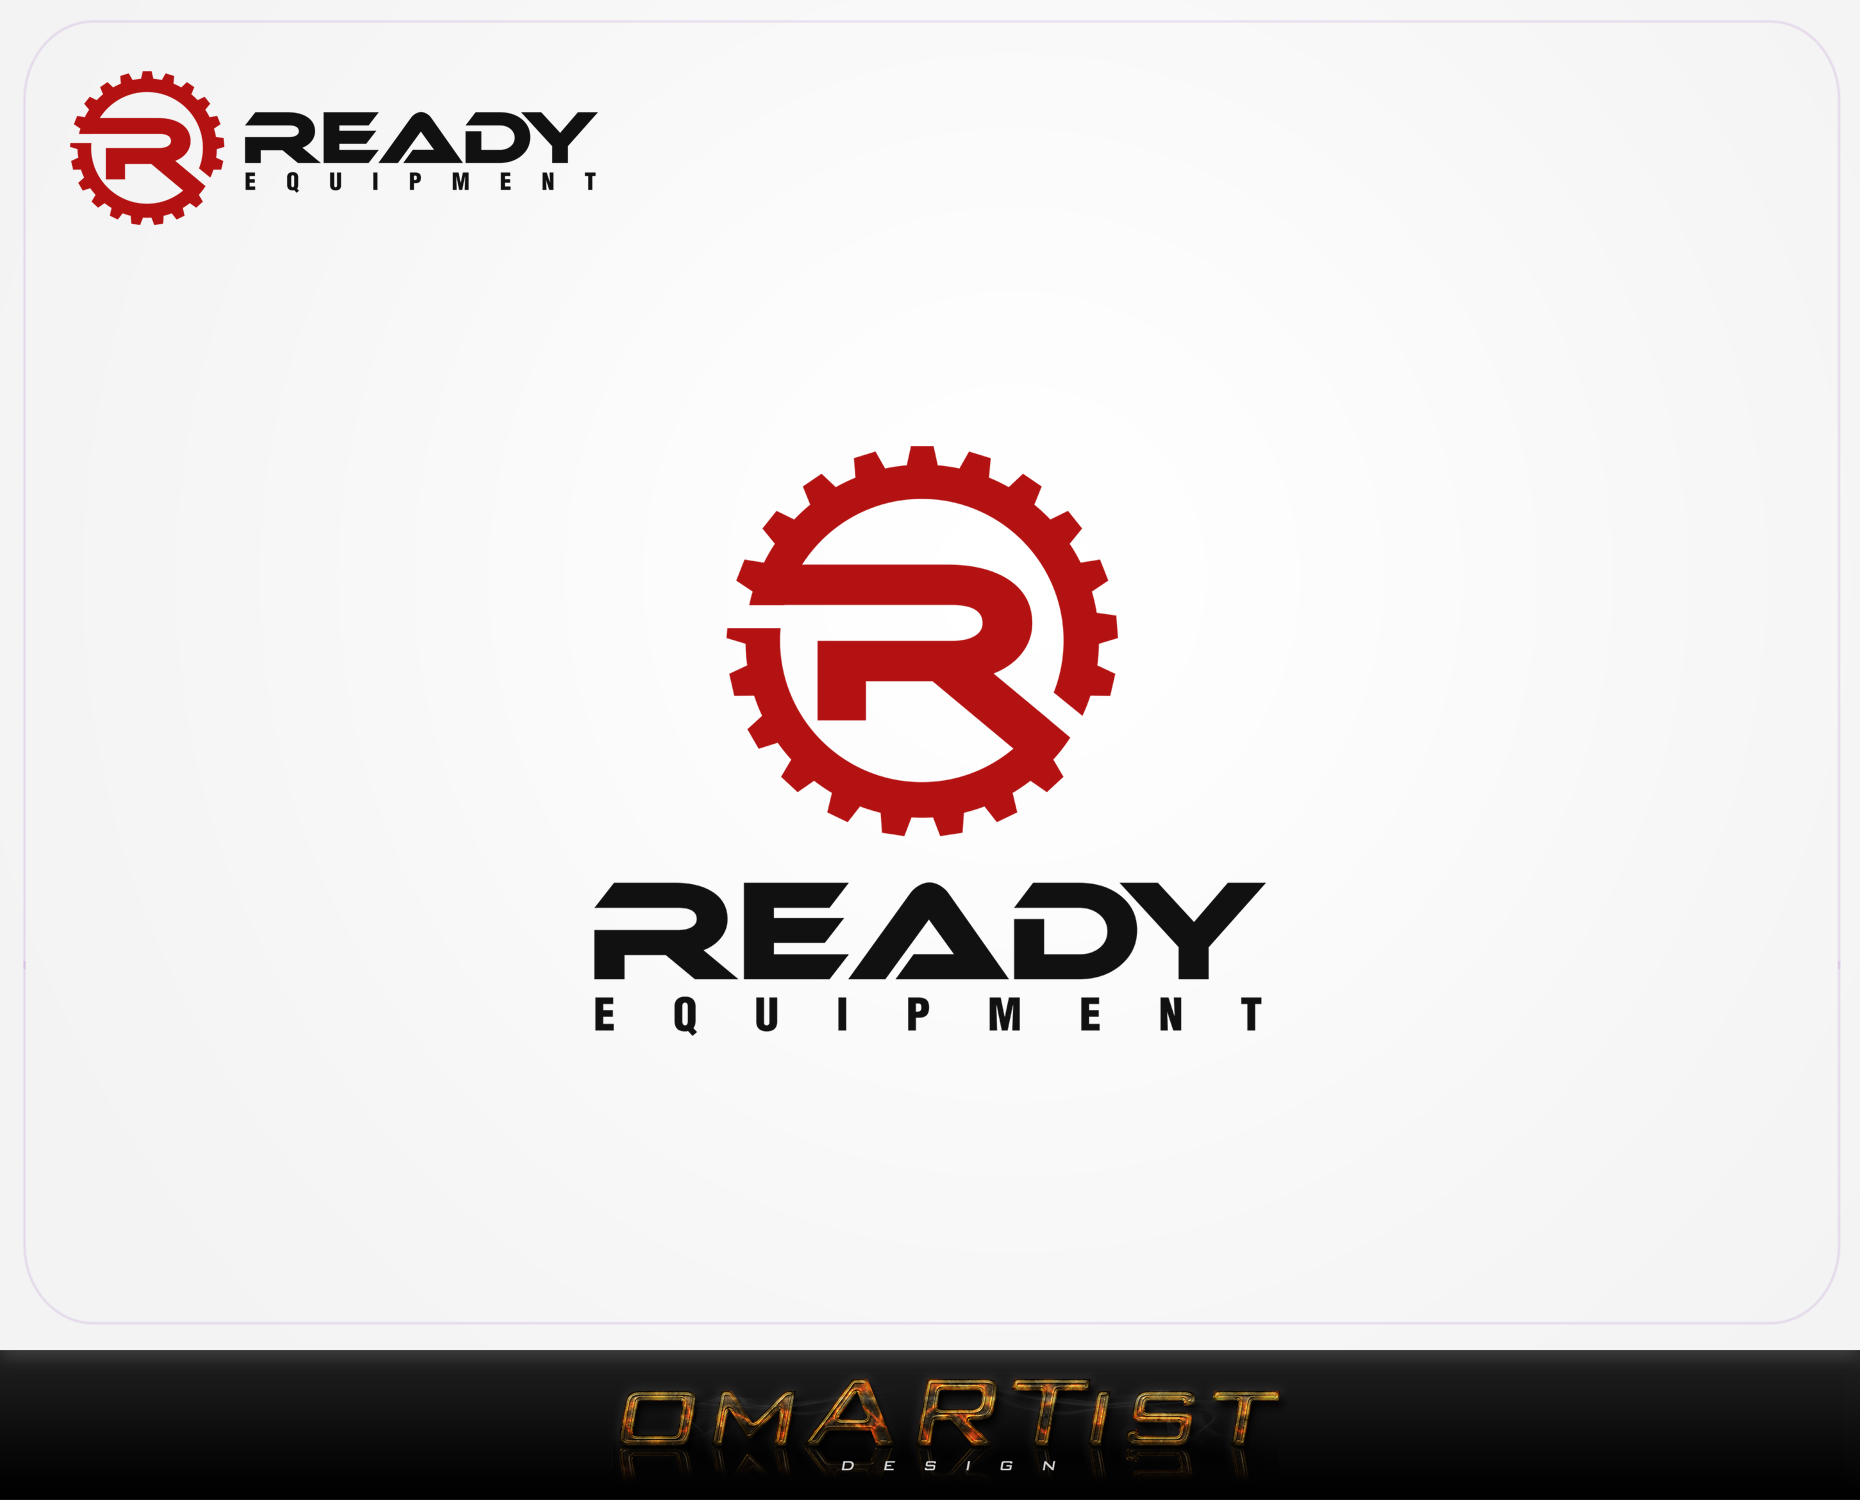 Logo Design by omARTist - Entry No. 213 in the Logo Design Contest Ready Equipment  Logo Design.